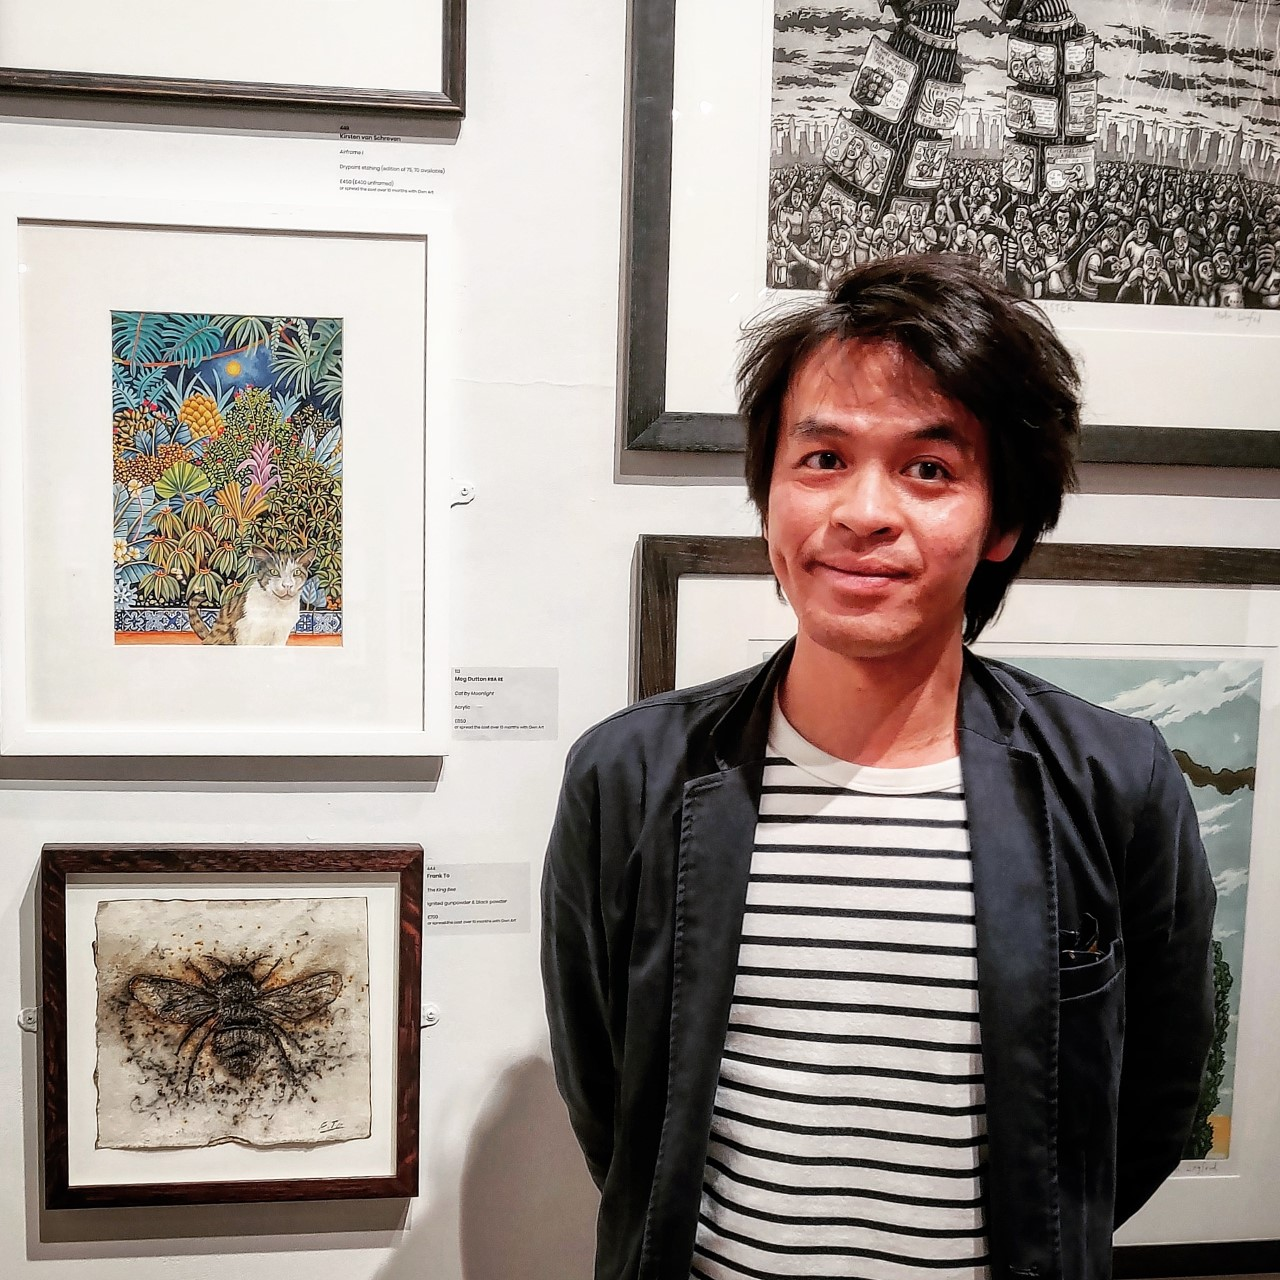 Frank To with his painting King Bee at the prestigious London art show.